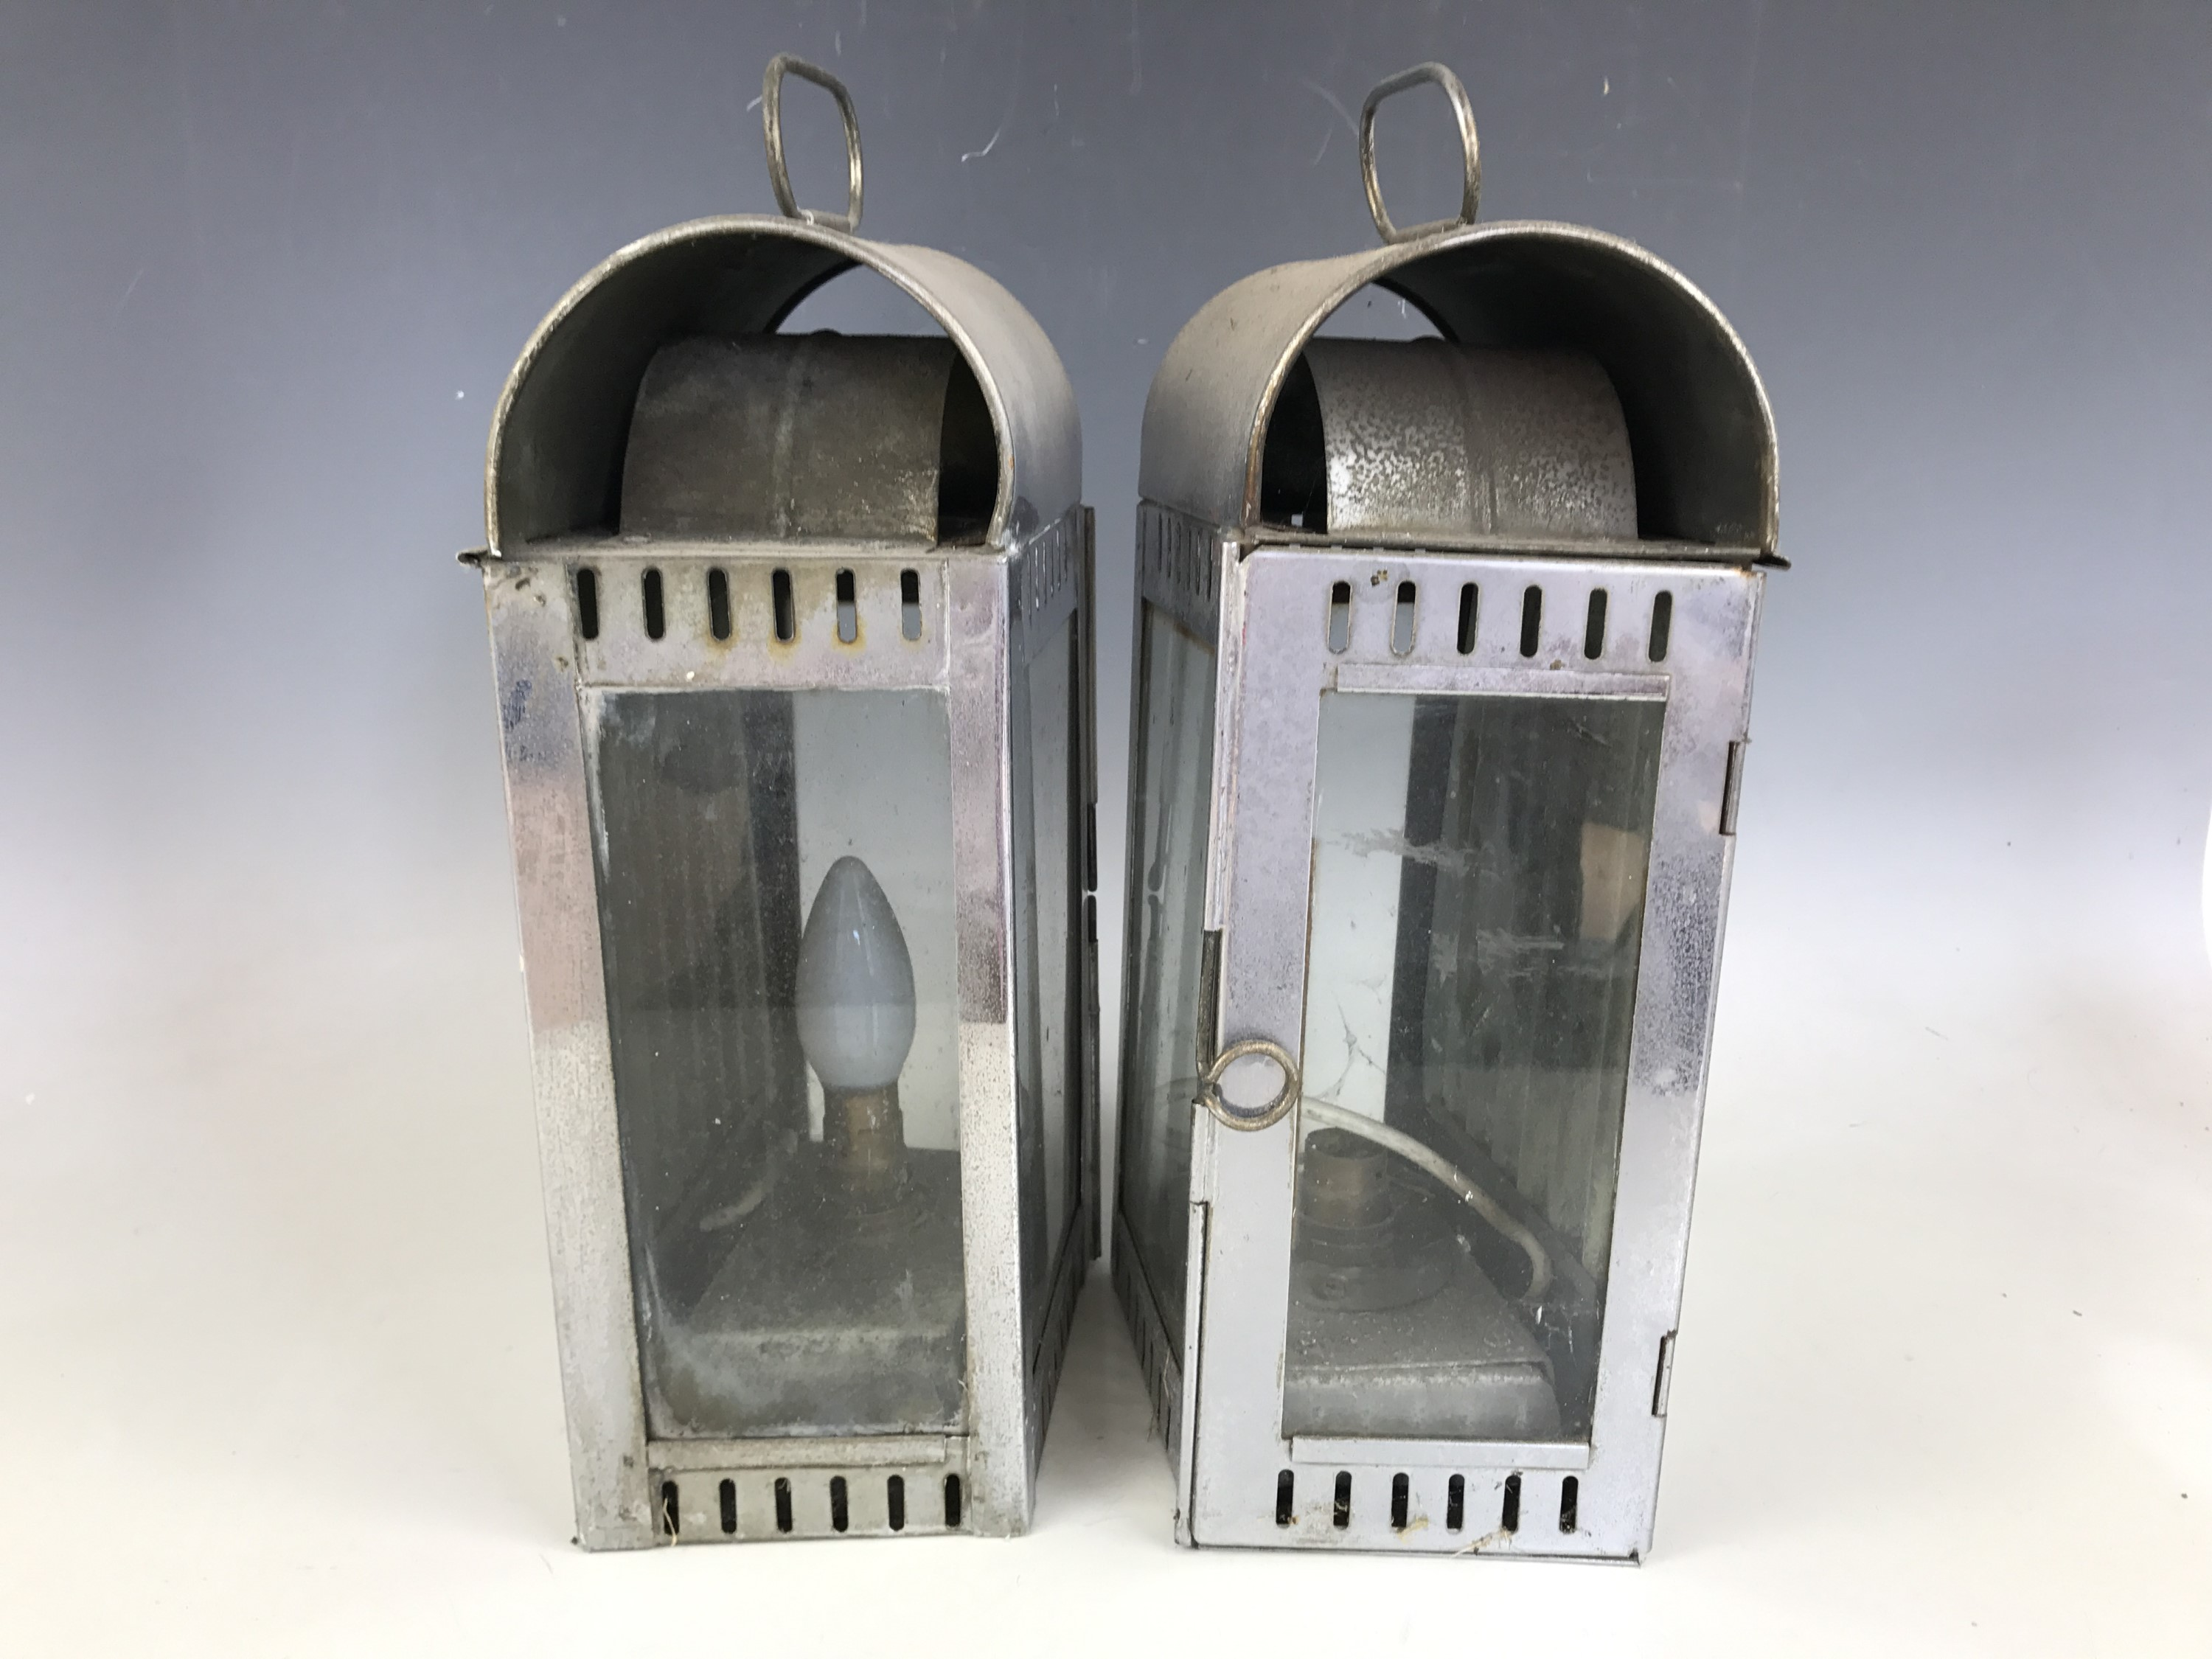 Lot 29 - A pair of 19th Century marine oil lanterns (converted to electricity), 38 cm